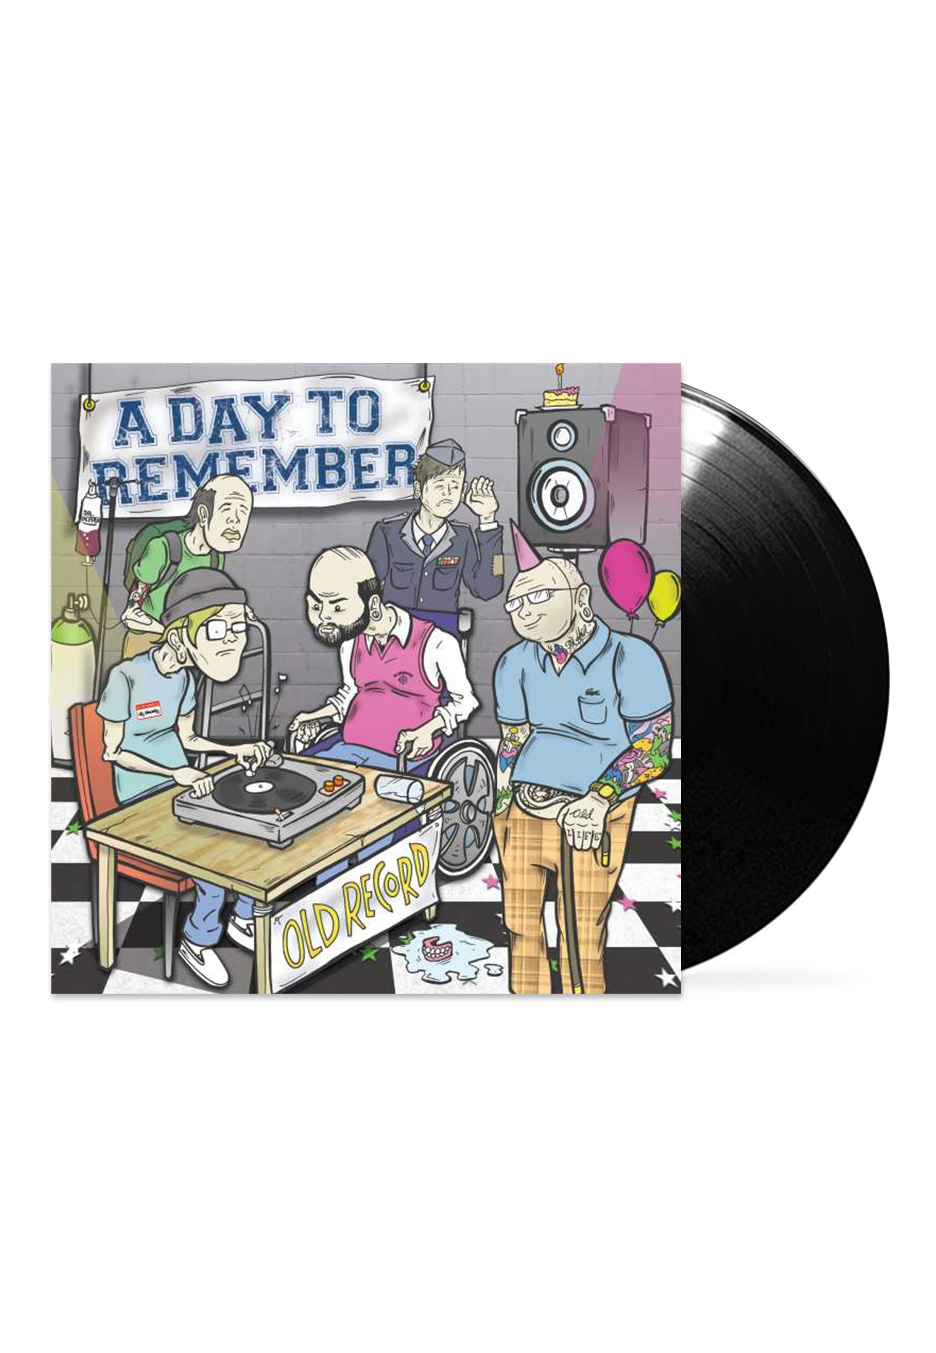 A Day To Remember - Old Record - LP - Official Melodic ... A Day To Remember Old Record